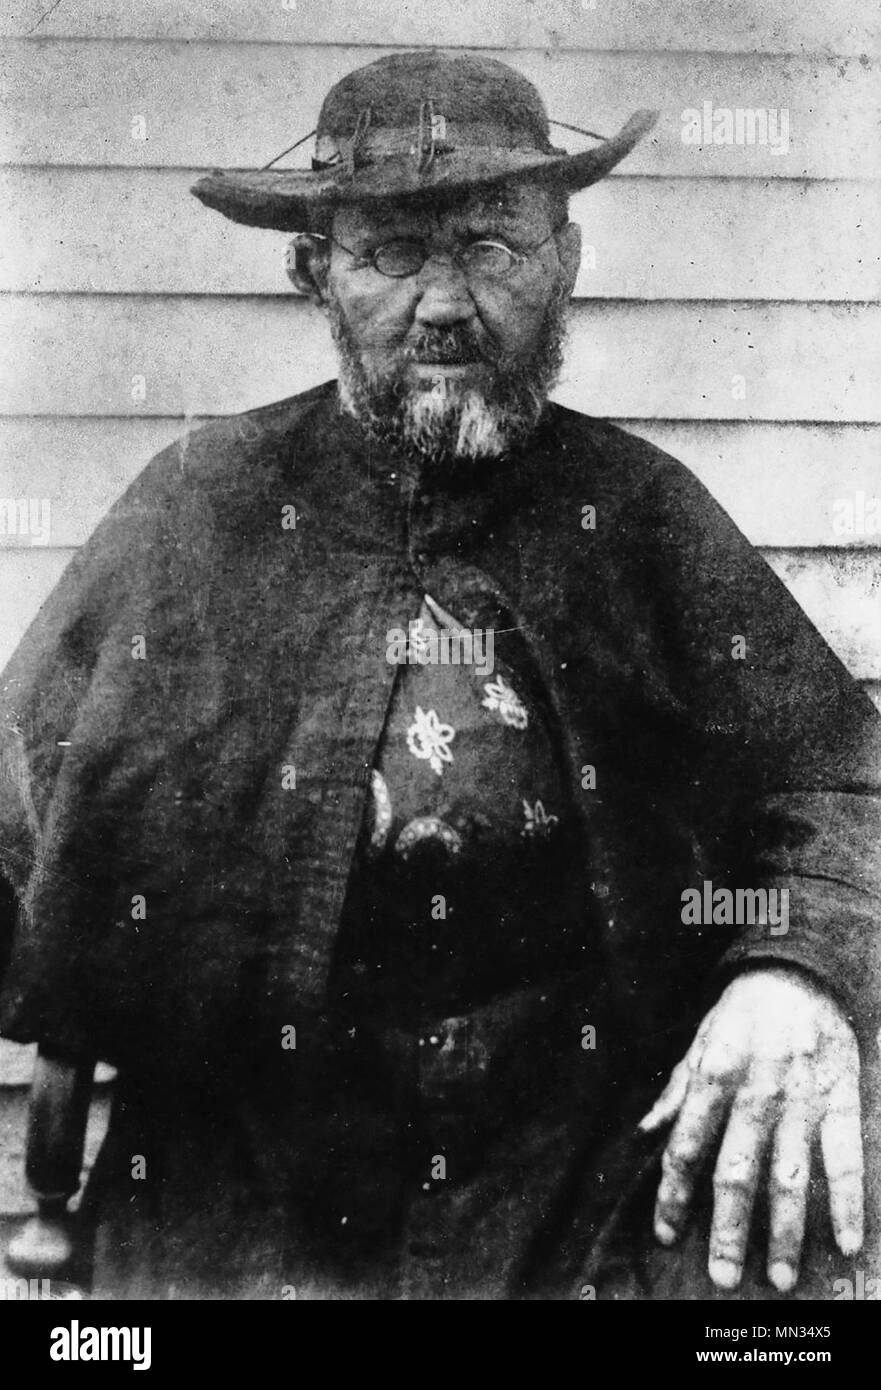 Father damien taken in 1889 either late february or march weeks before his